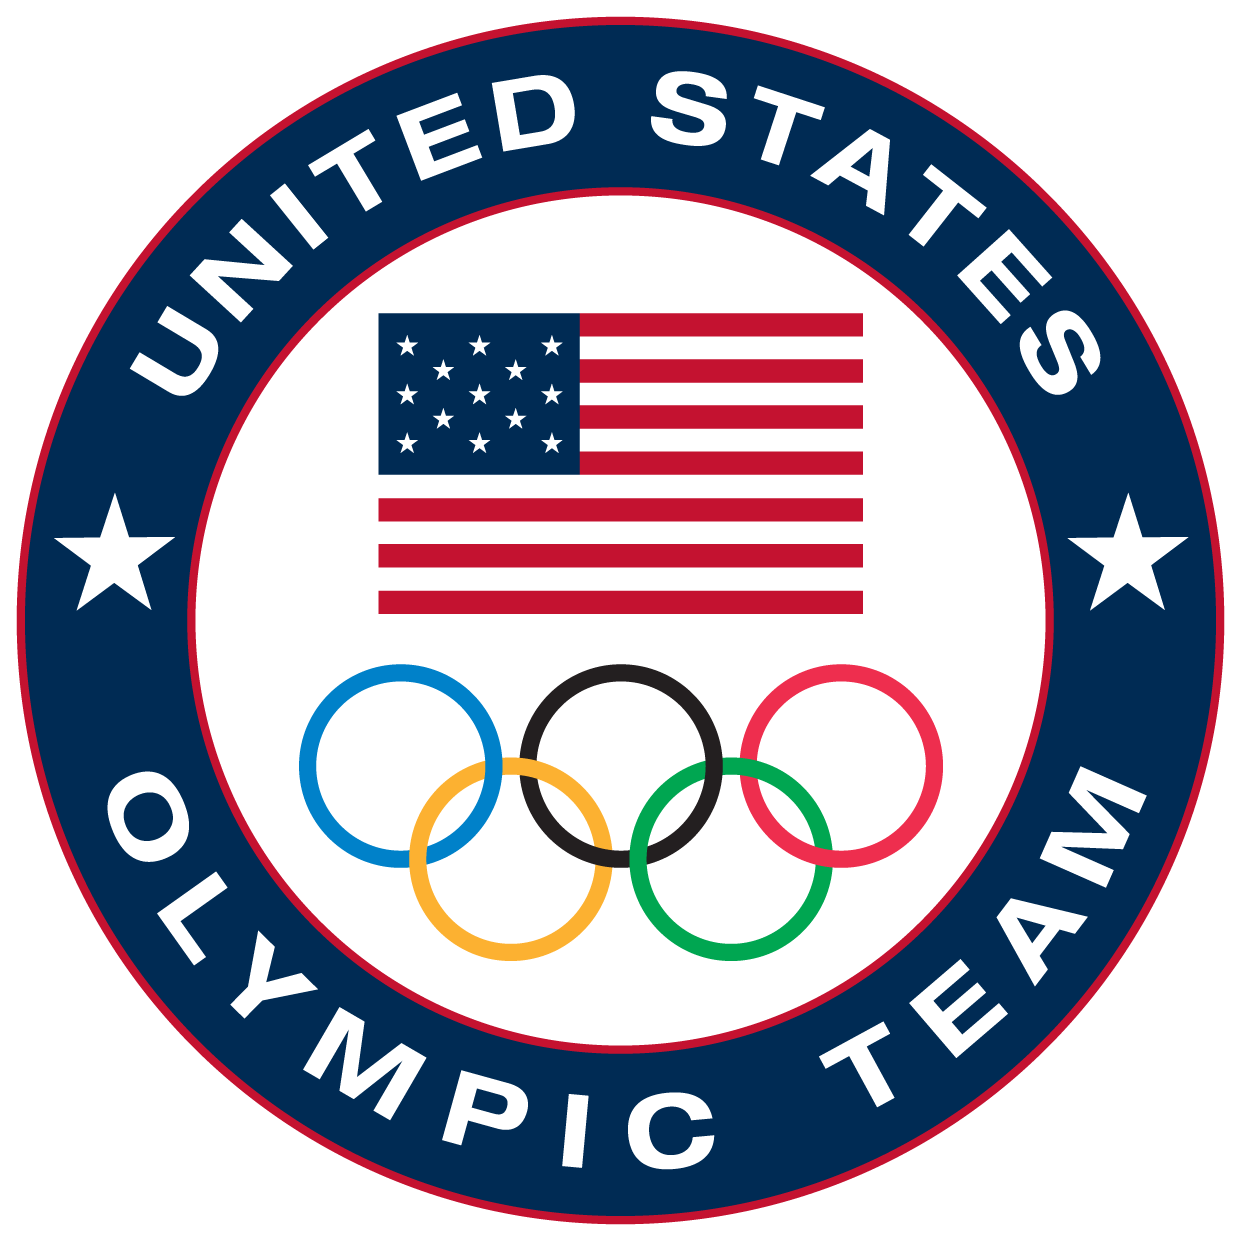 Navy_OlympicTeam_Color_IOCRings.png